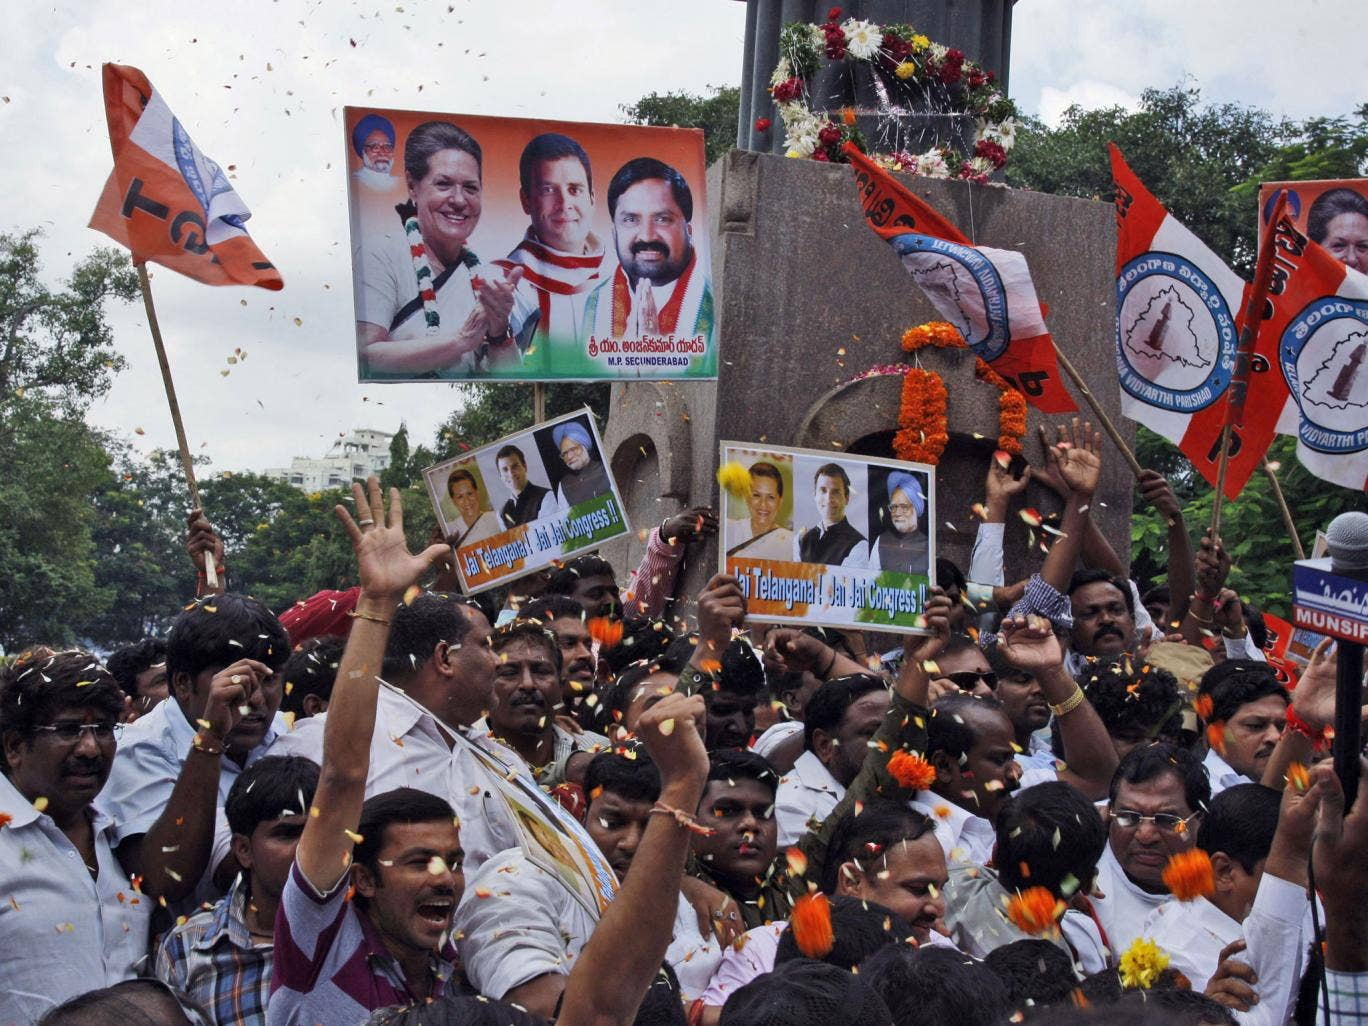 Indian Congress members and supporters celebrate after India's Union Cabinet approved the creation of a new state